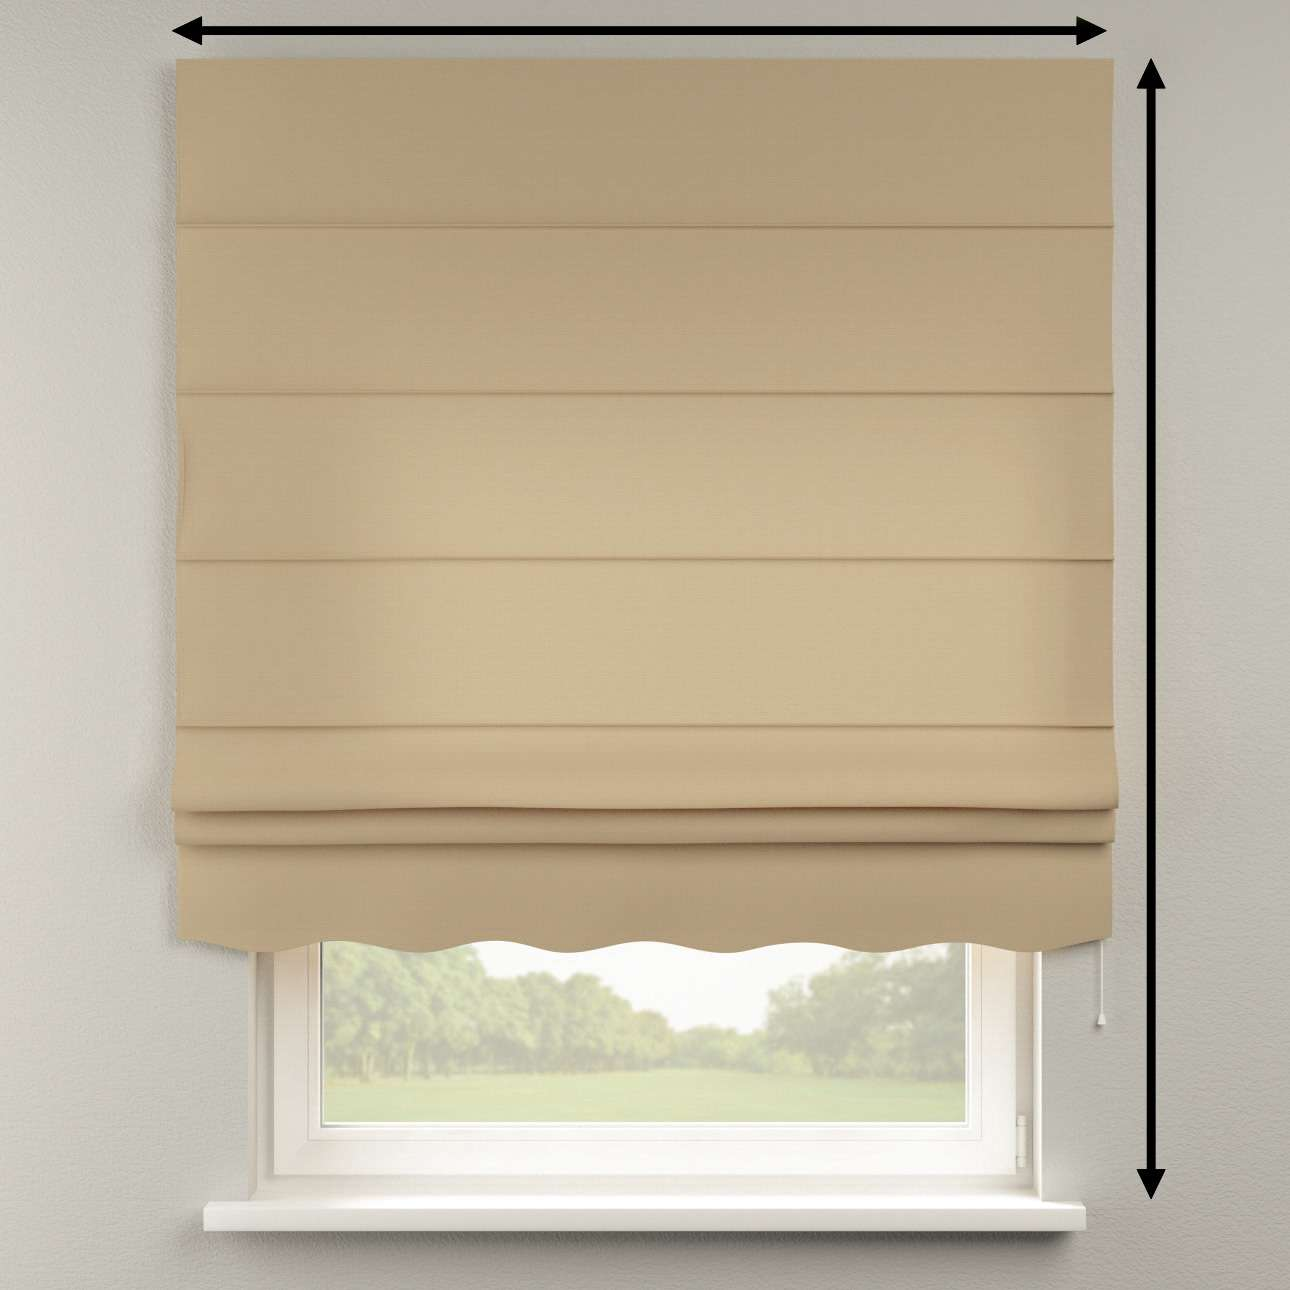 Florence roman blind  80 x 170 cm (31.5 x 67 inch) in collection Cotton Panama, fabric: 702-01